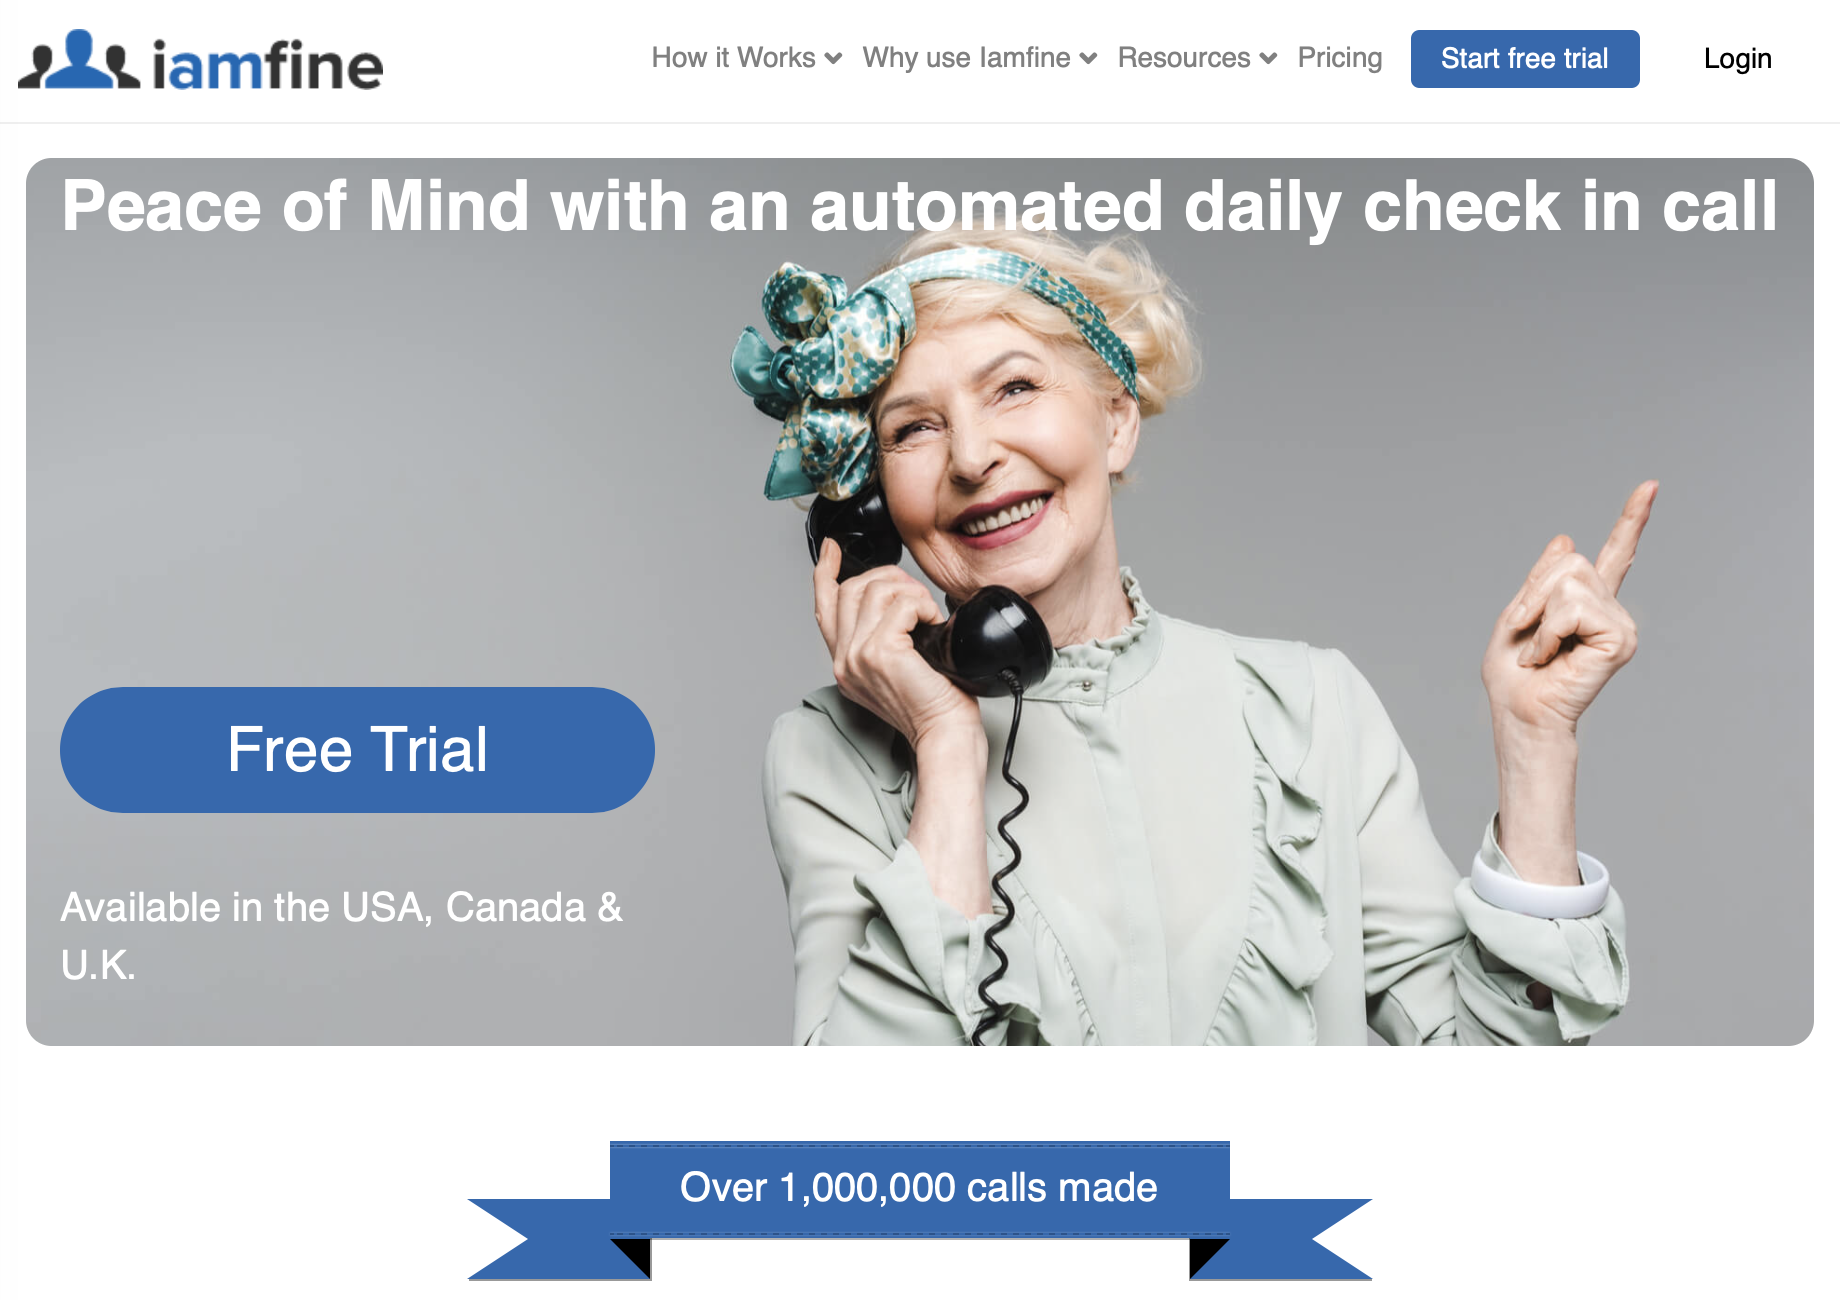 Iamfine daily wellness calls and Covid symptom tracking